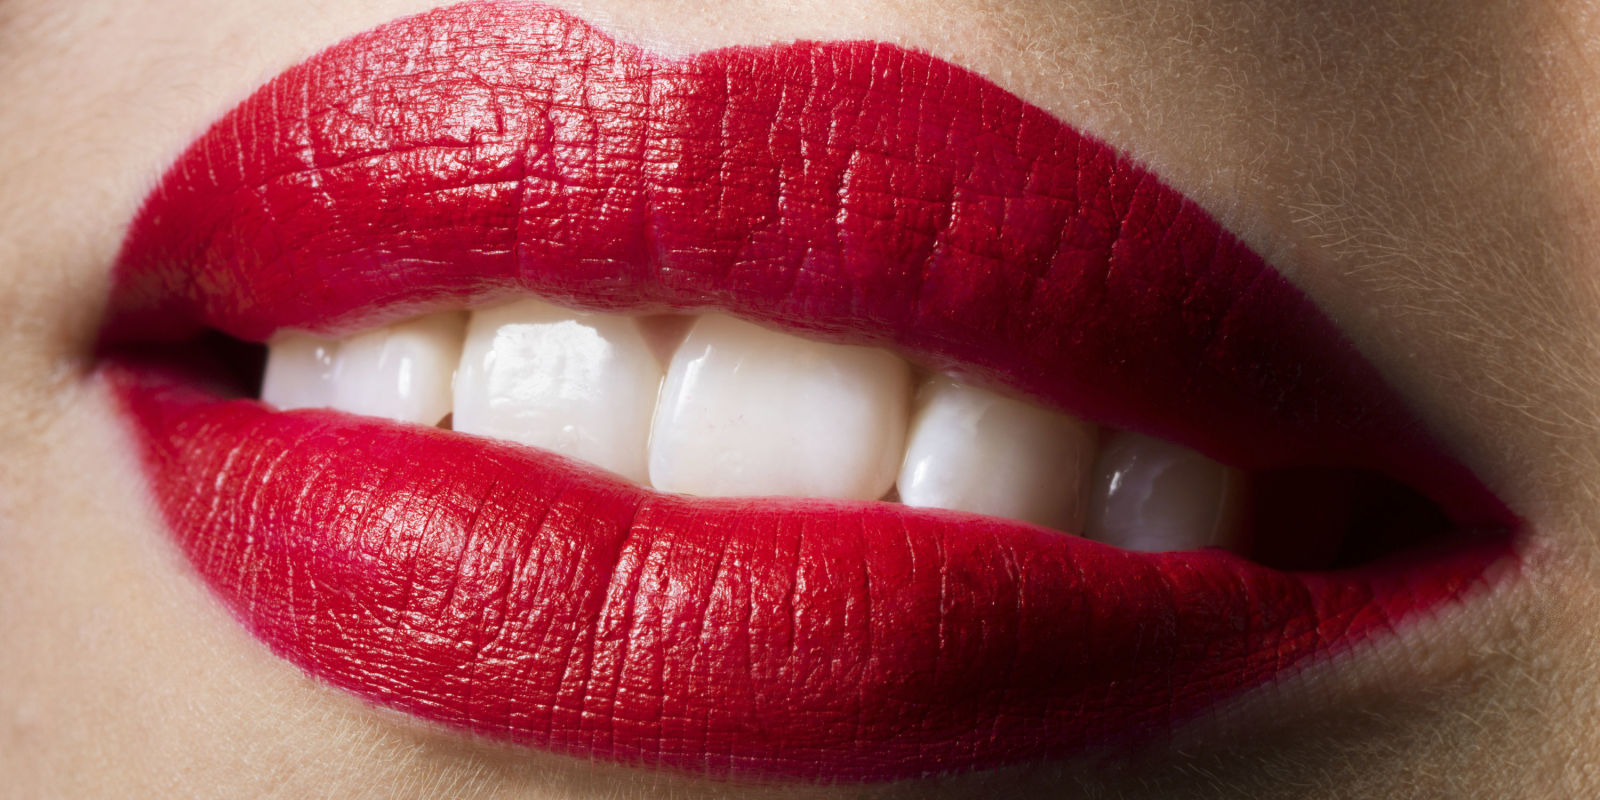 This is how one lipstick left a womans lips